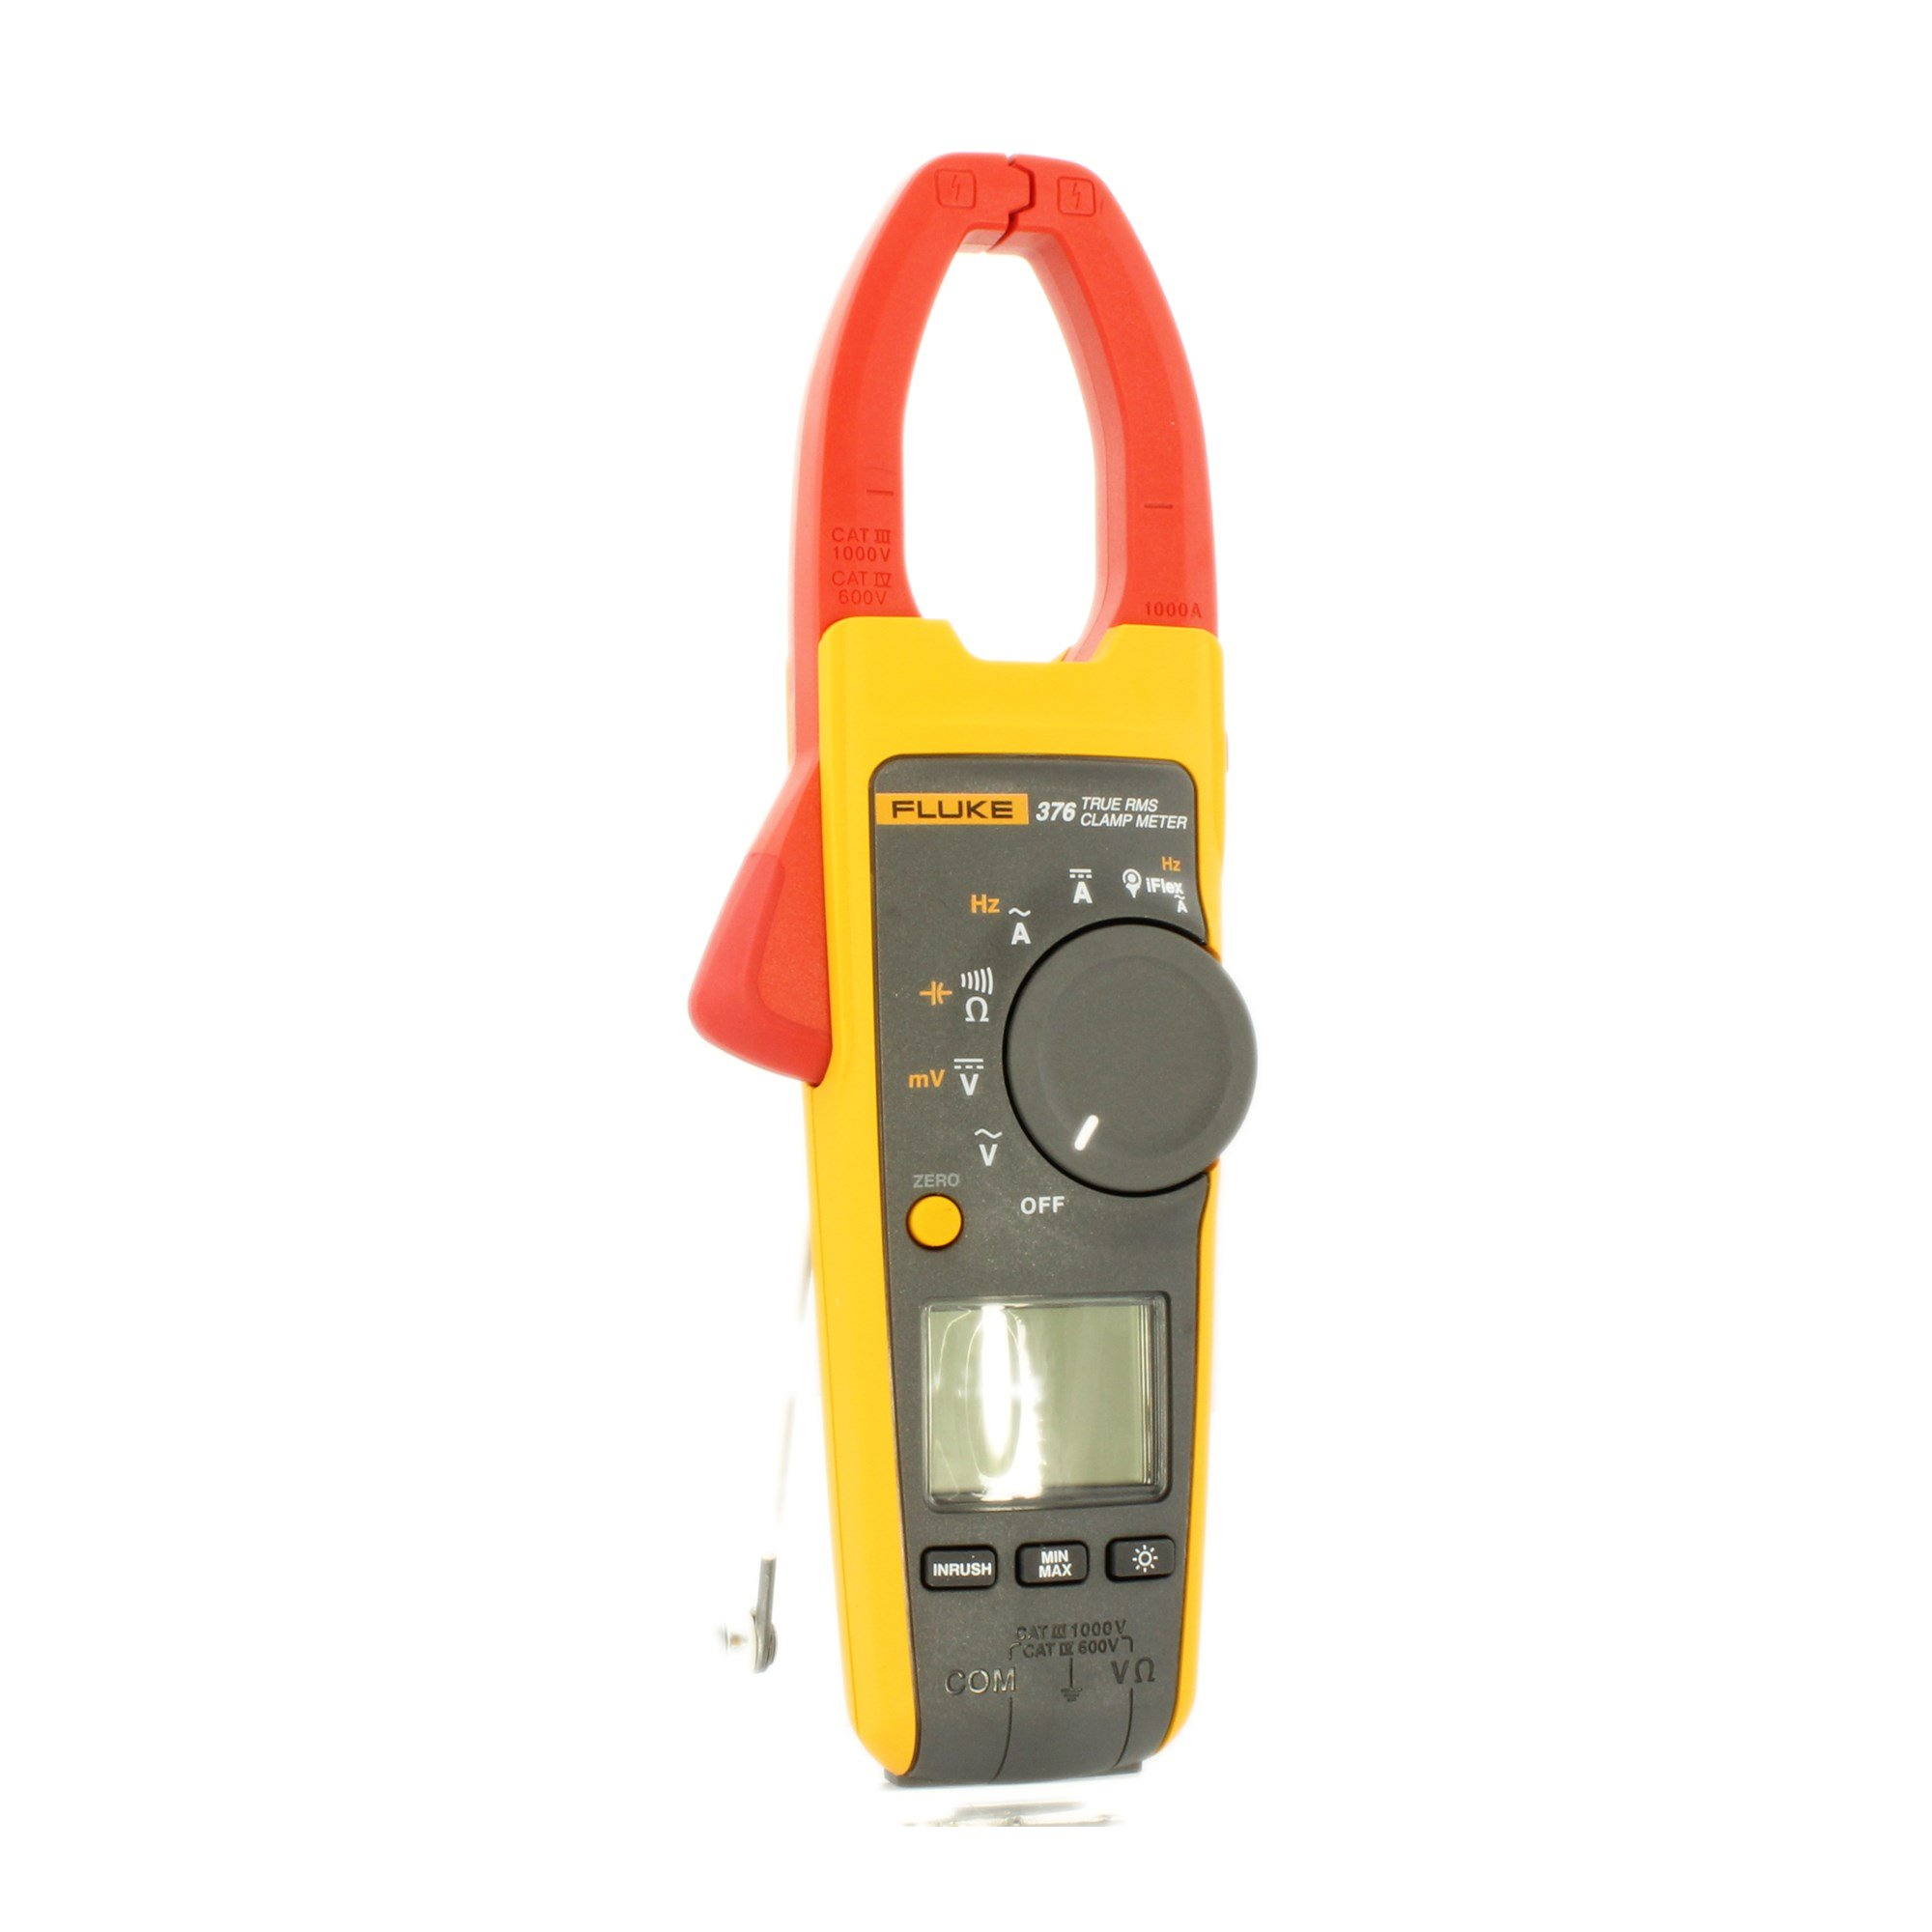 Fluke 376 True Rms Ac Dc Clamp Meter With Iflex Lcr Bridge Patch Measure Smd Universal Clip Multipurpose Test